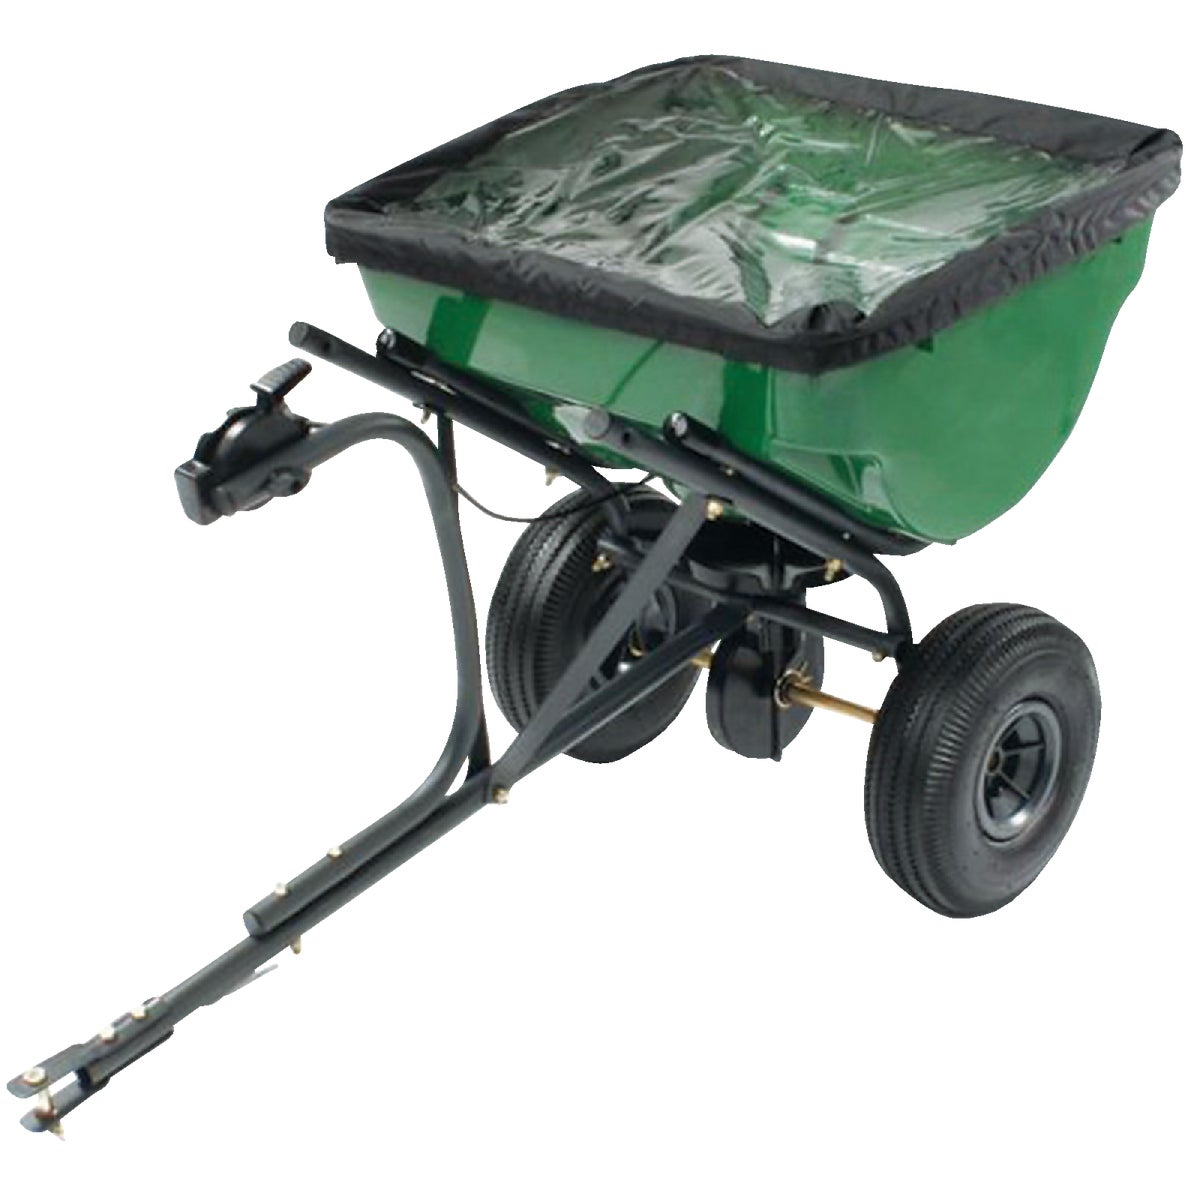 100LB BROADCAST SPREADER - TBS4500PRCGY by Precision Prod Inc